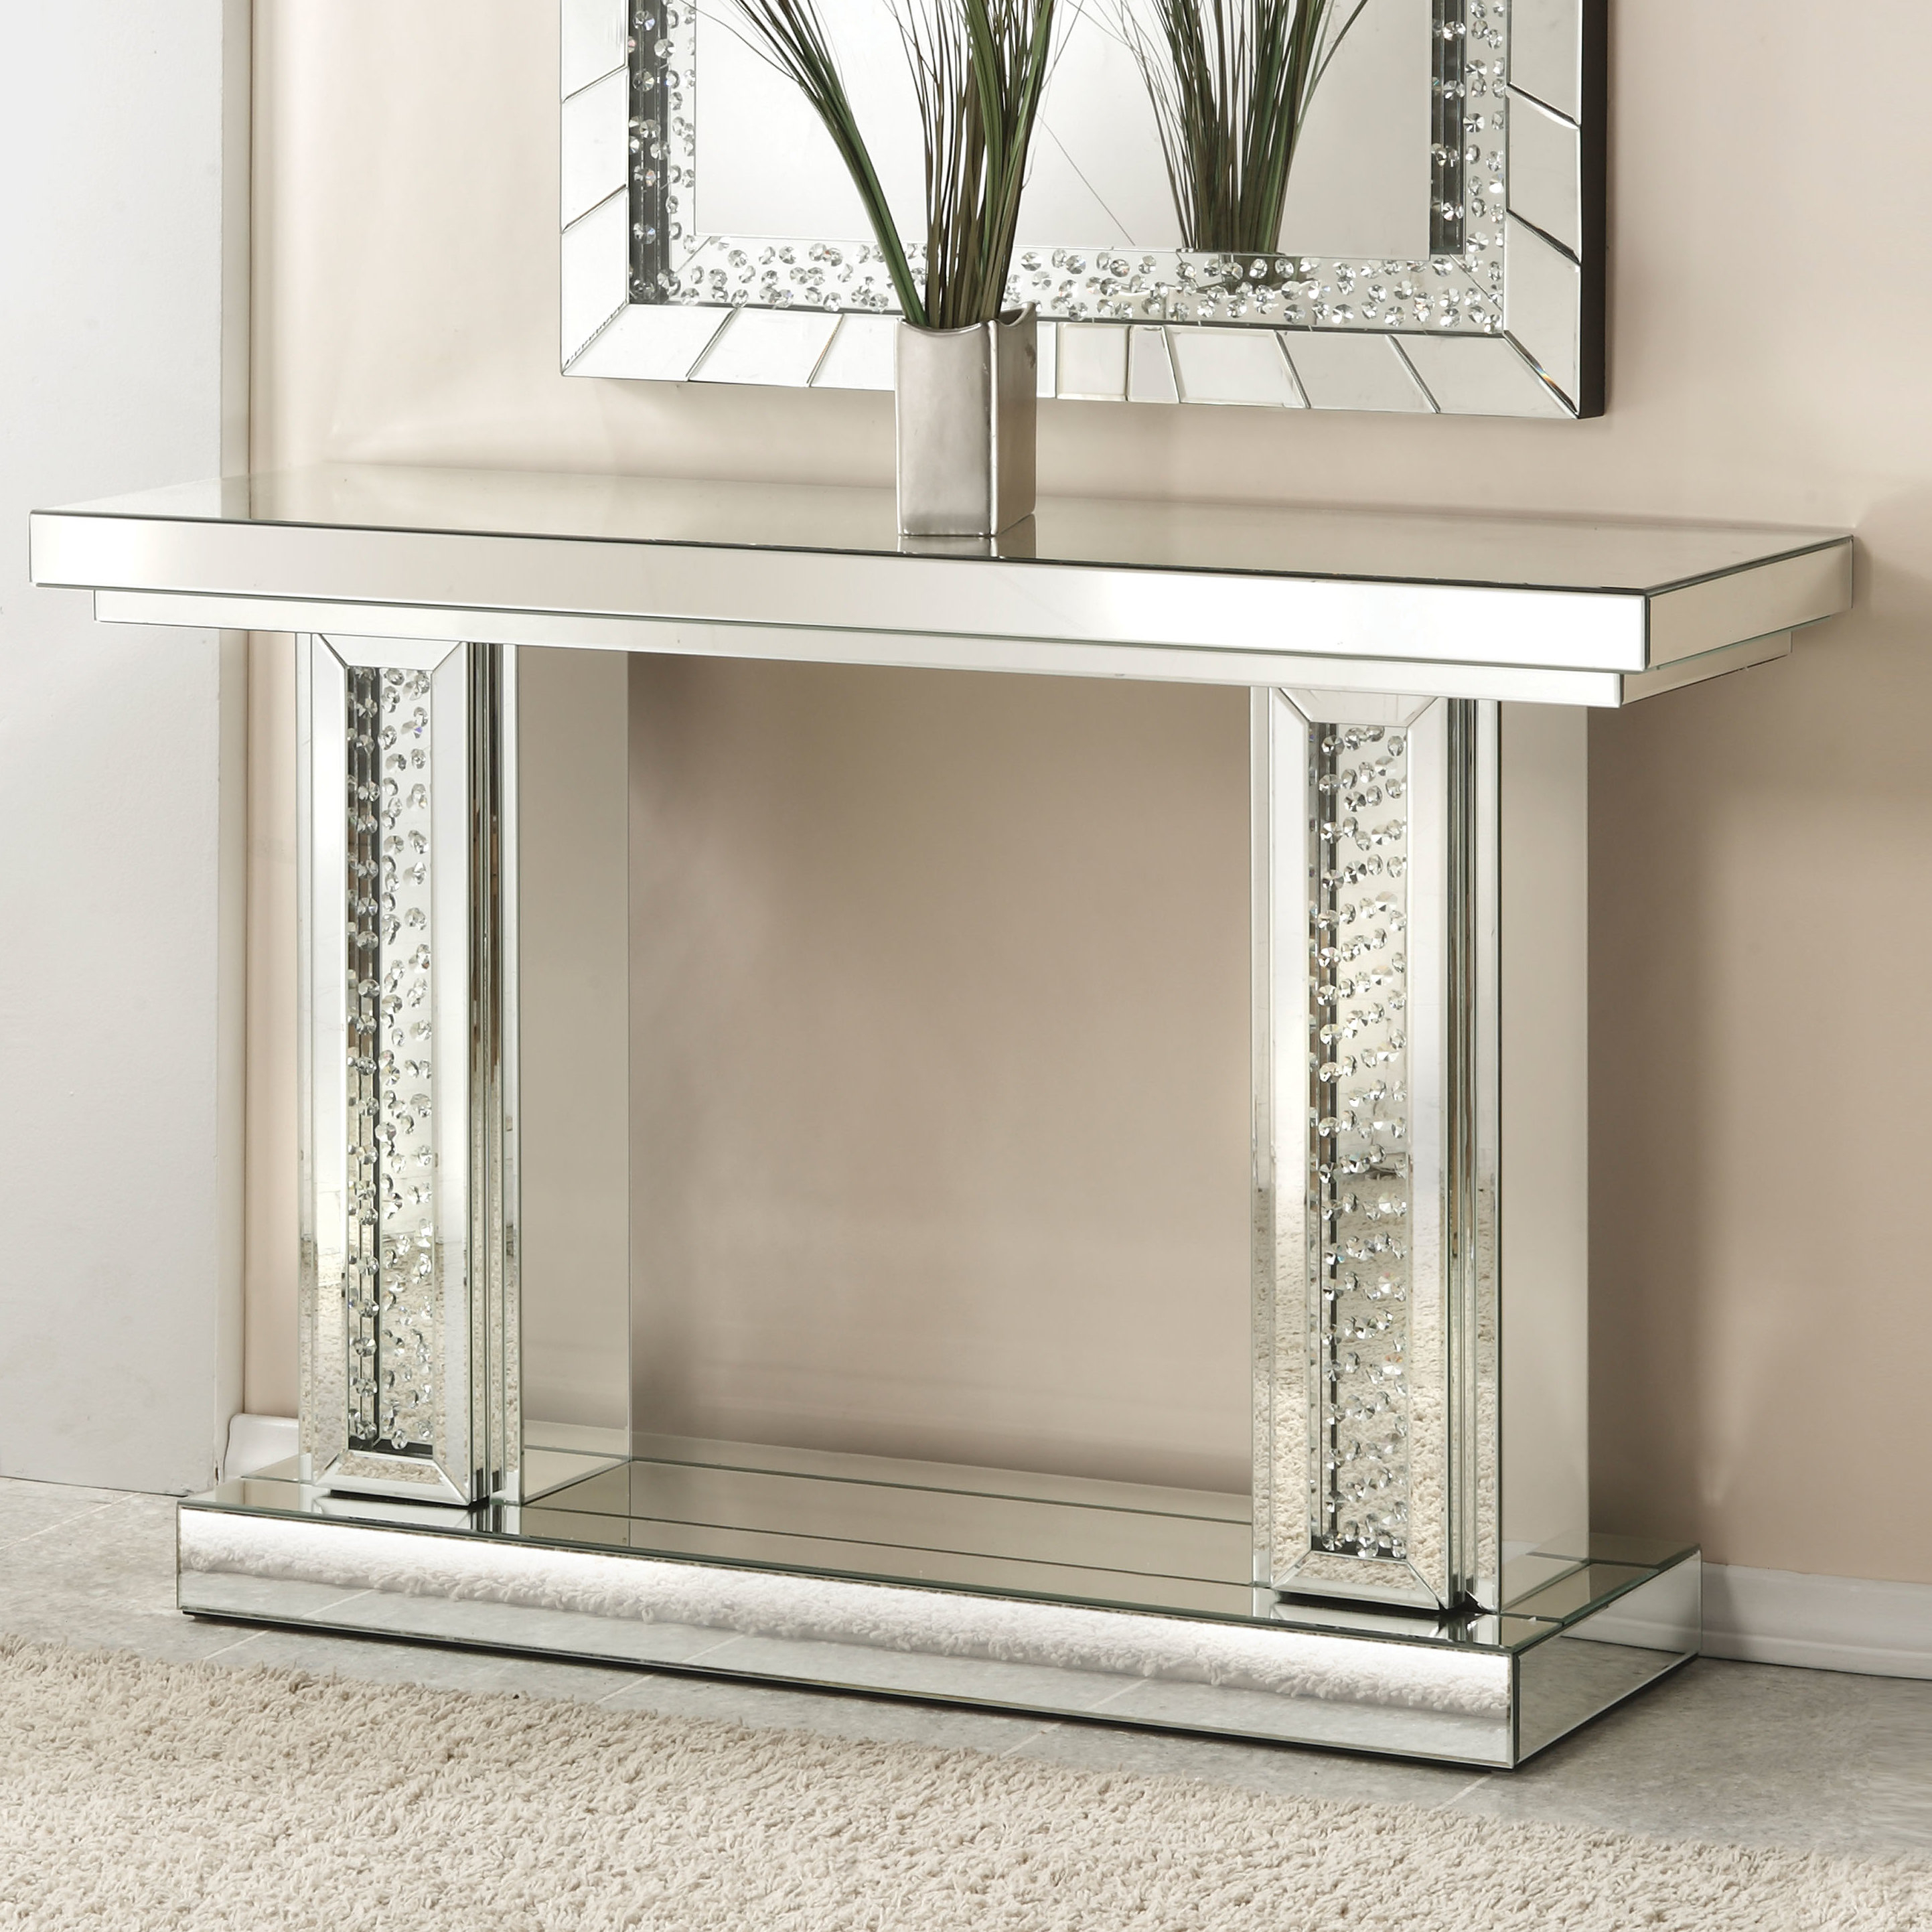 Rosdorf Park Longo Rectangle Mirrored Console Table & Reviews | Wayfair throughout Natural Wood Mirrored Media Console Tables (Image 23 of 30)